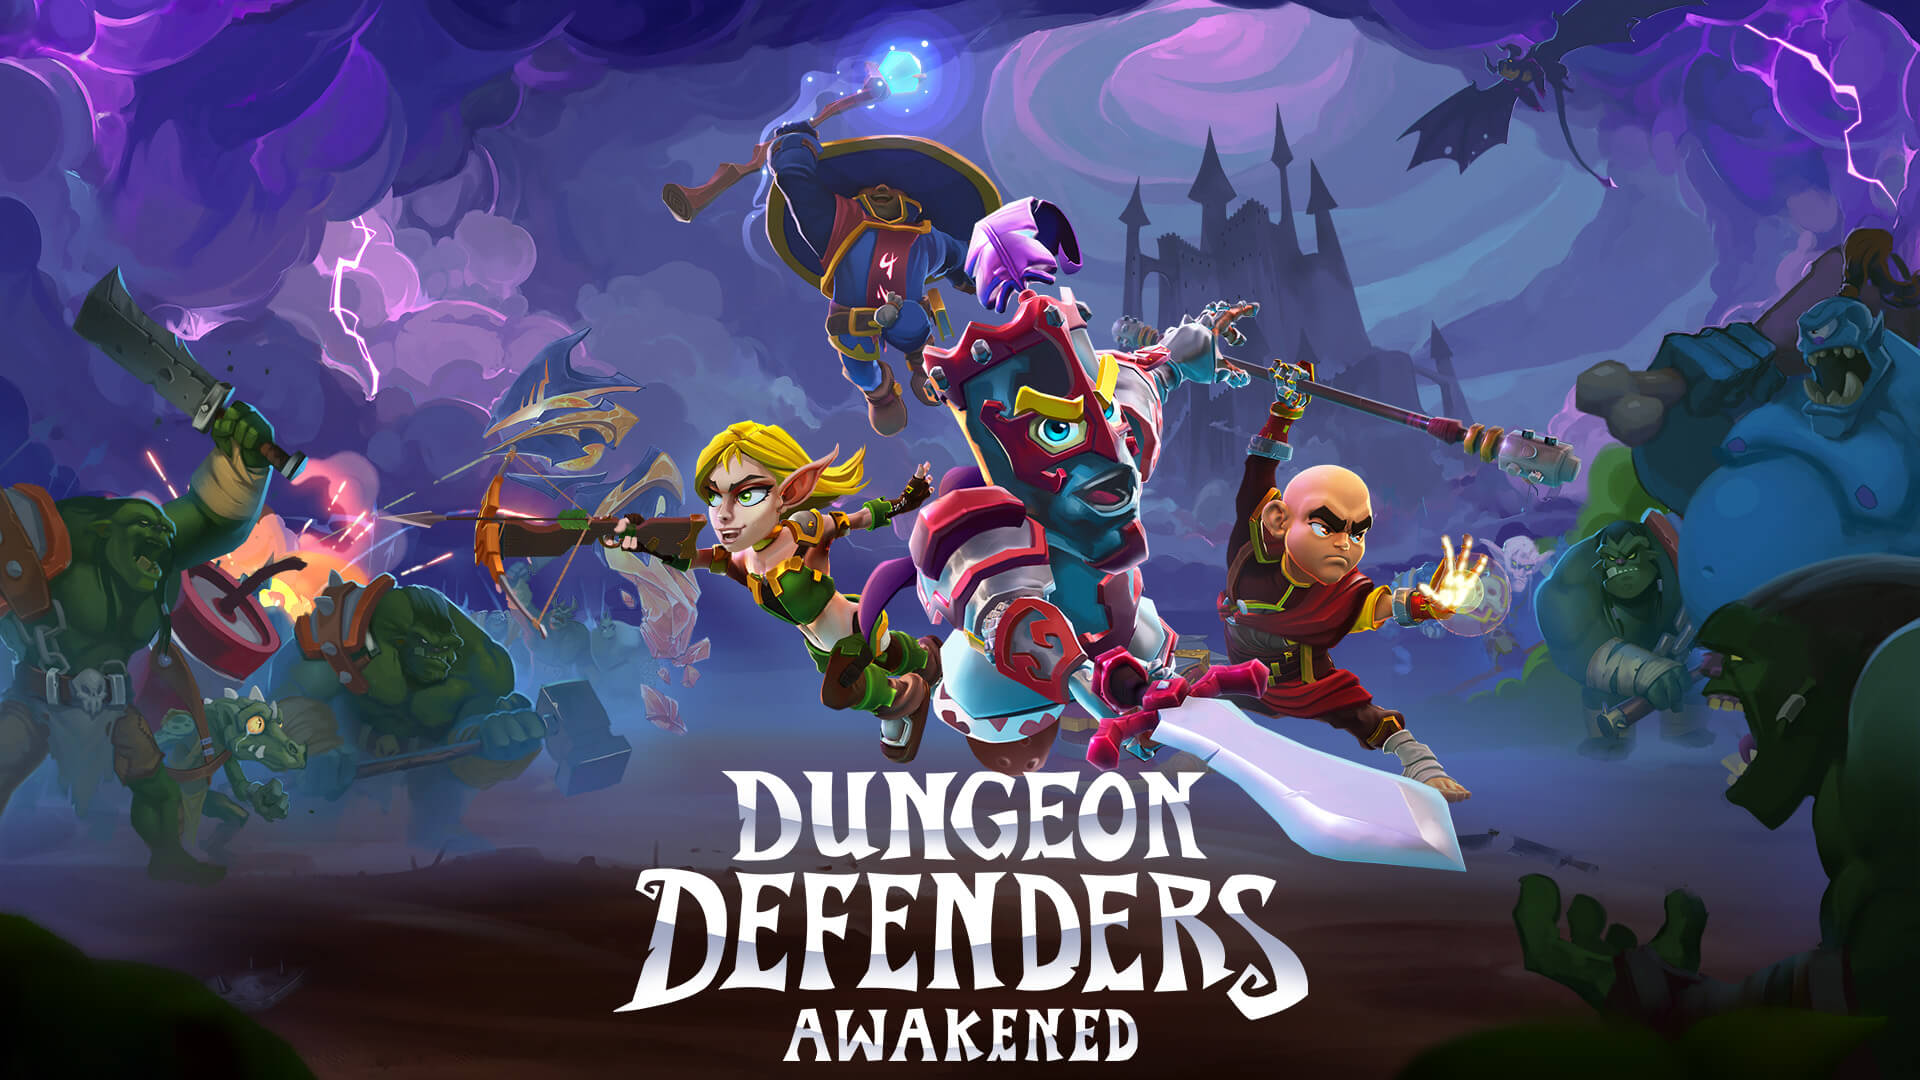 Dungeon Defenders Awakened Releases February 21st